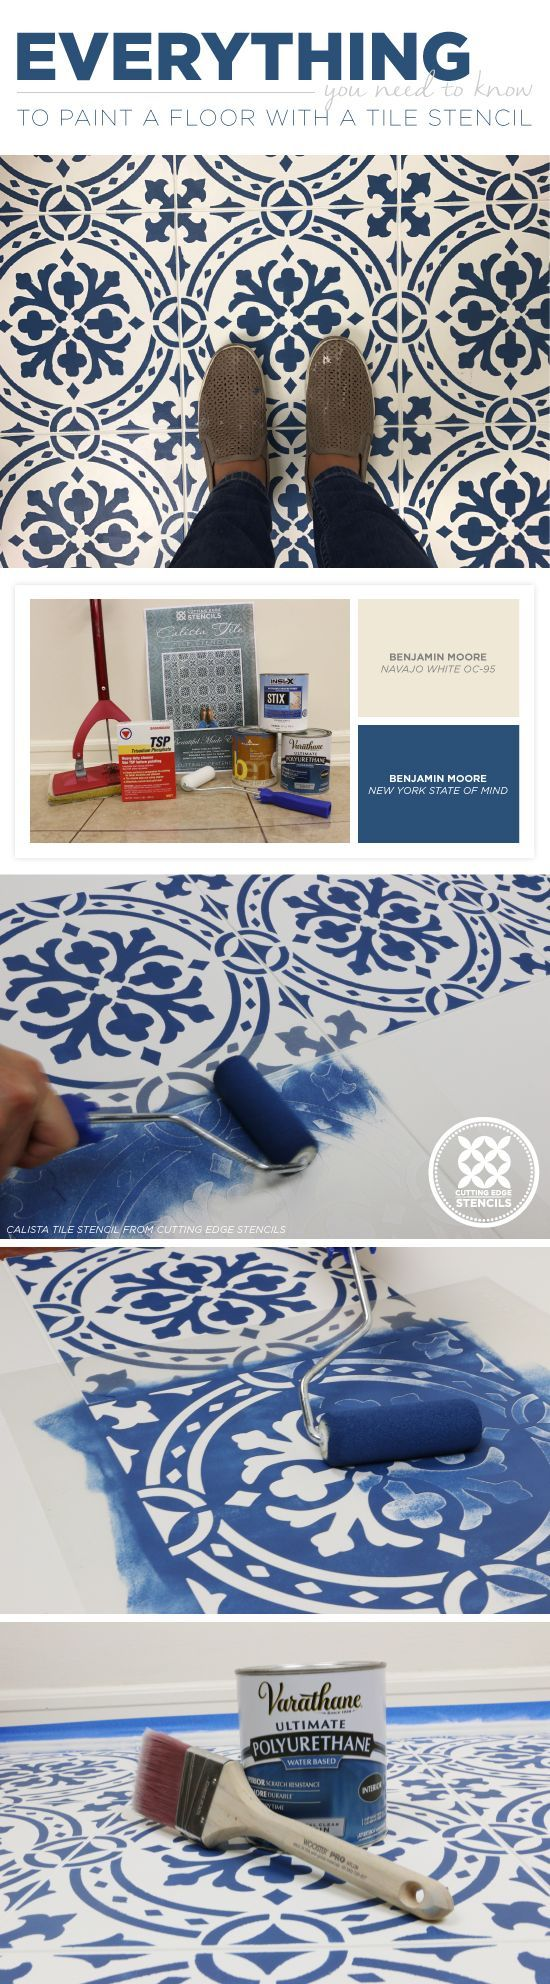 Everything You Need To Know To Paint A Floor With A Tile Stencil - Stencil Stories